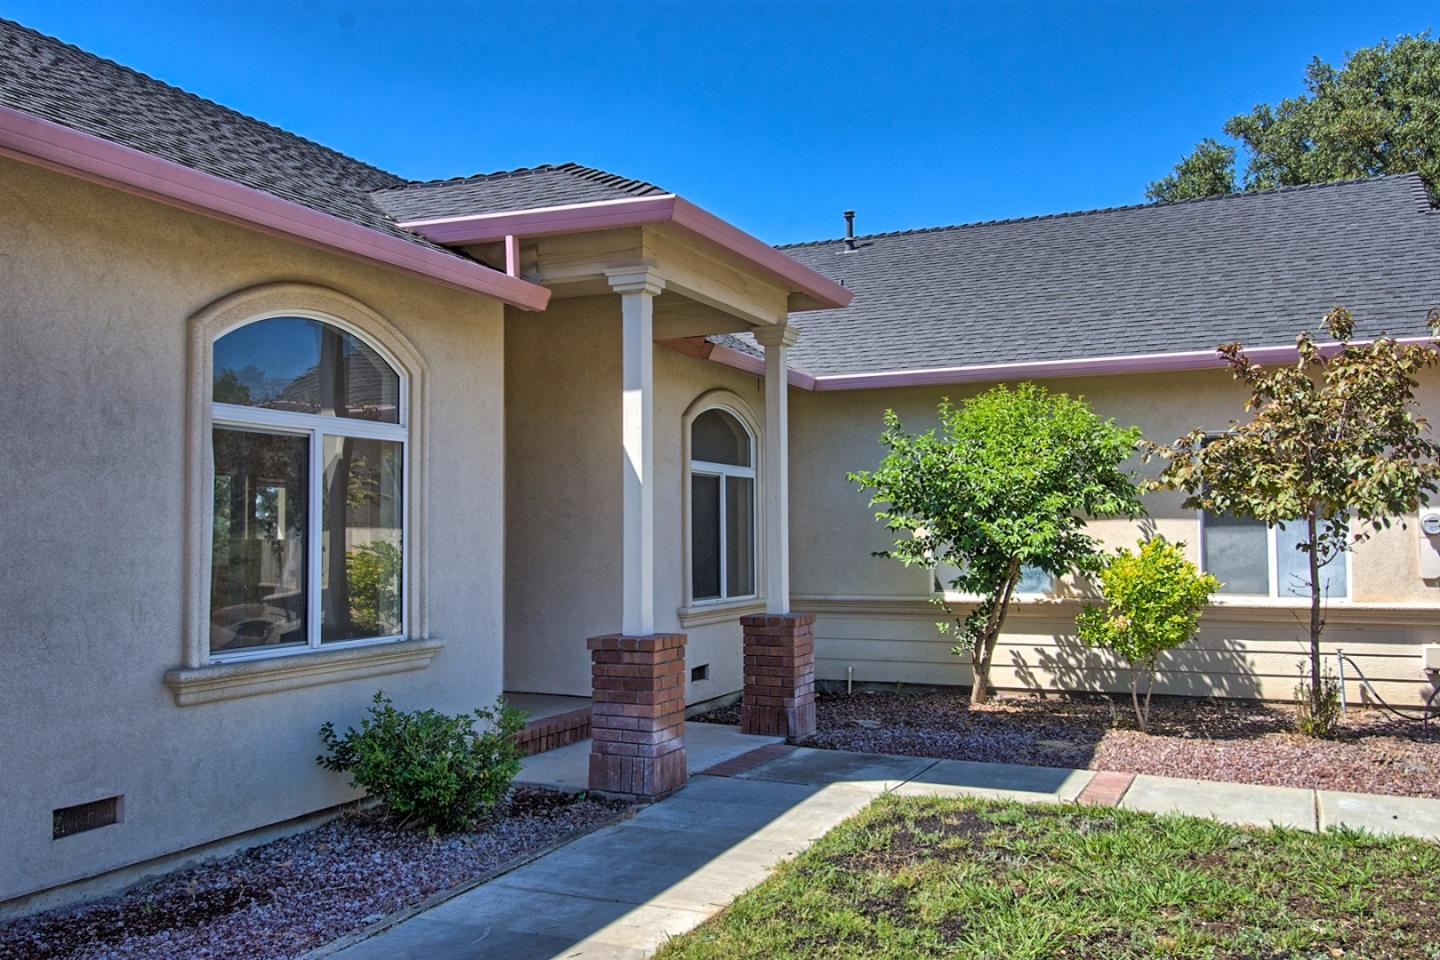 Casa Unifamiliar por un Venta en 22488 Adobe Road 22488 Adobe Road Red Bluff, California 96080 Estados Unidos